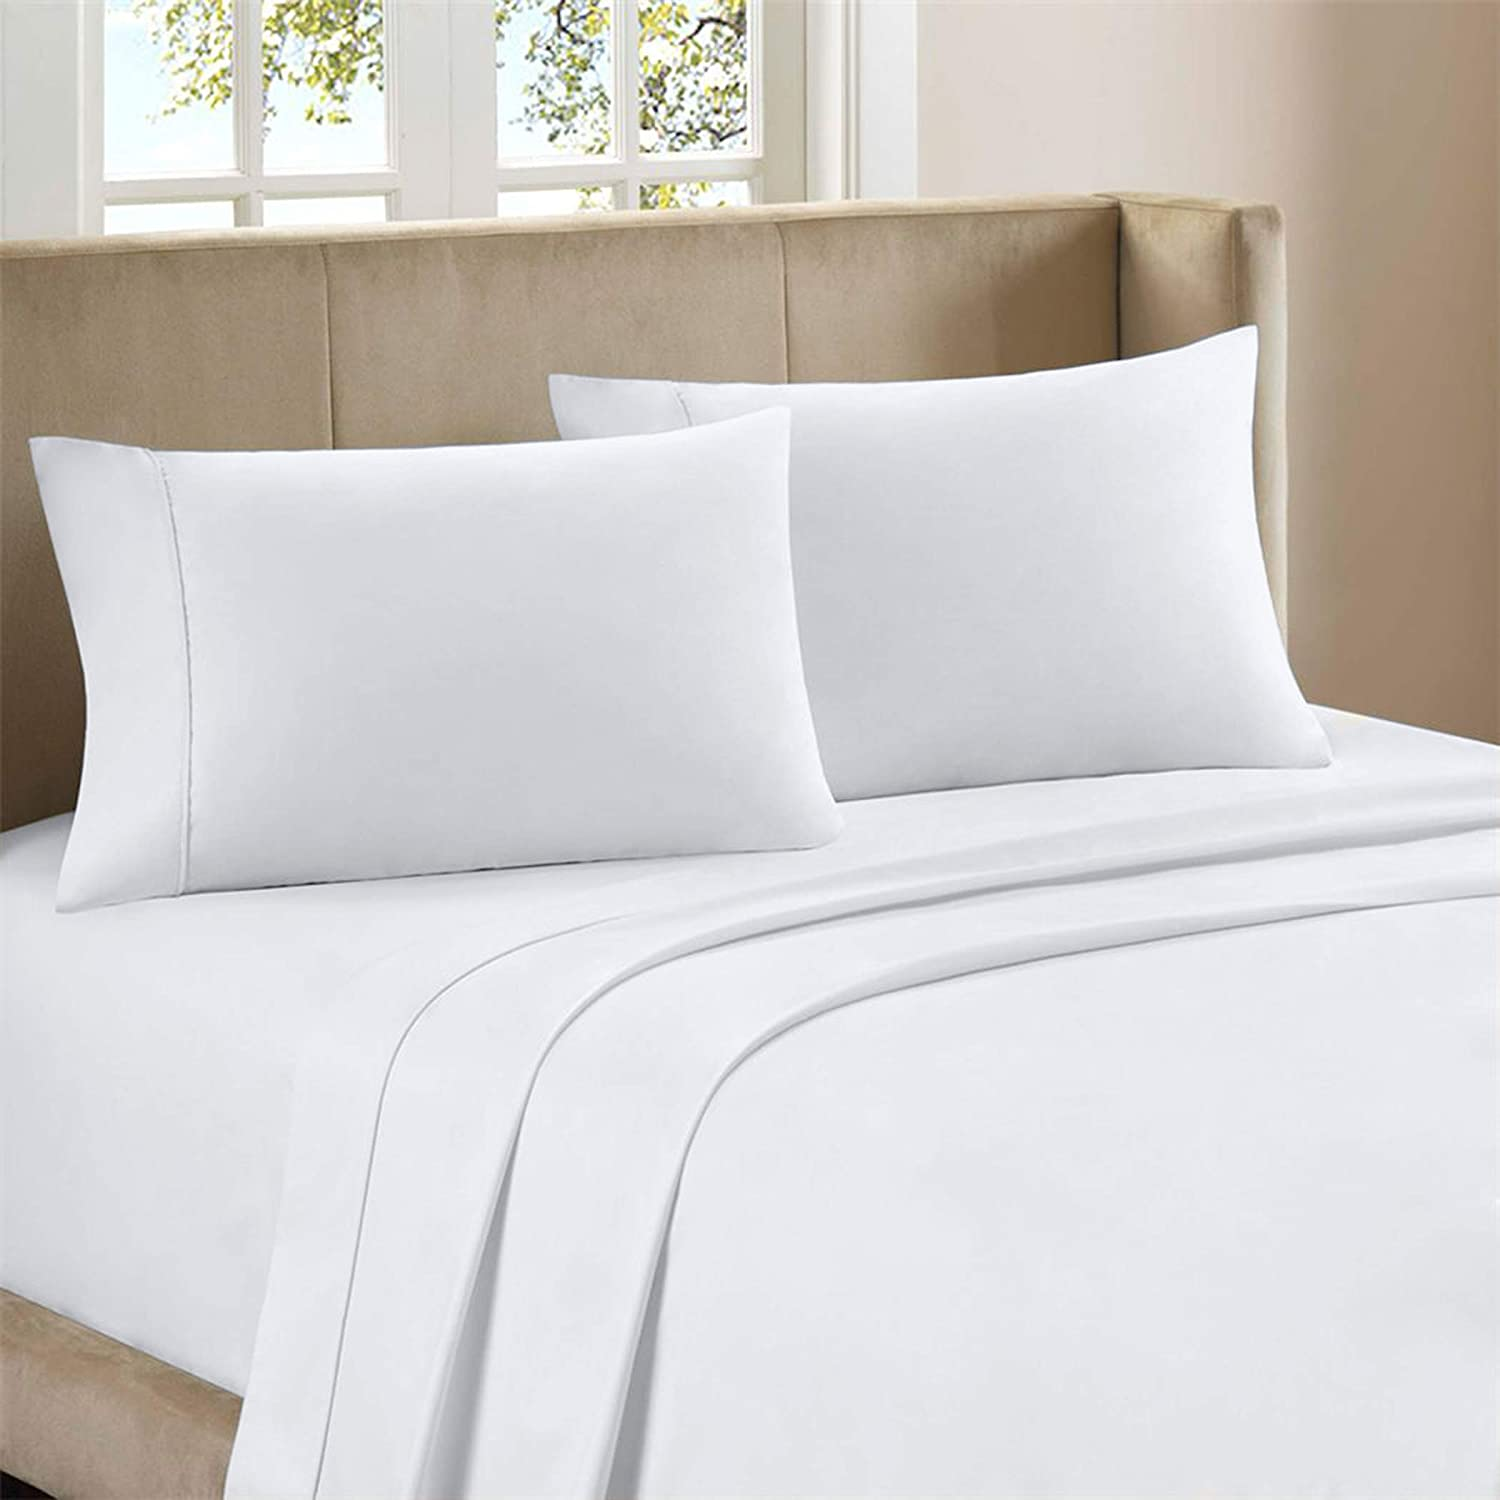 """300-Thread-Count Pure Organic Cotton Percale Sheet Set, Luxury 4 Piece White Full Size Sheets, Moisture Wicking, Cool Crisp & Breathable, Patented Fitted Sheet Fits Upto 18"""" Deep Pocket - Purity Home"""